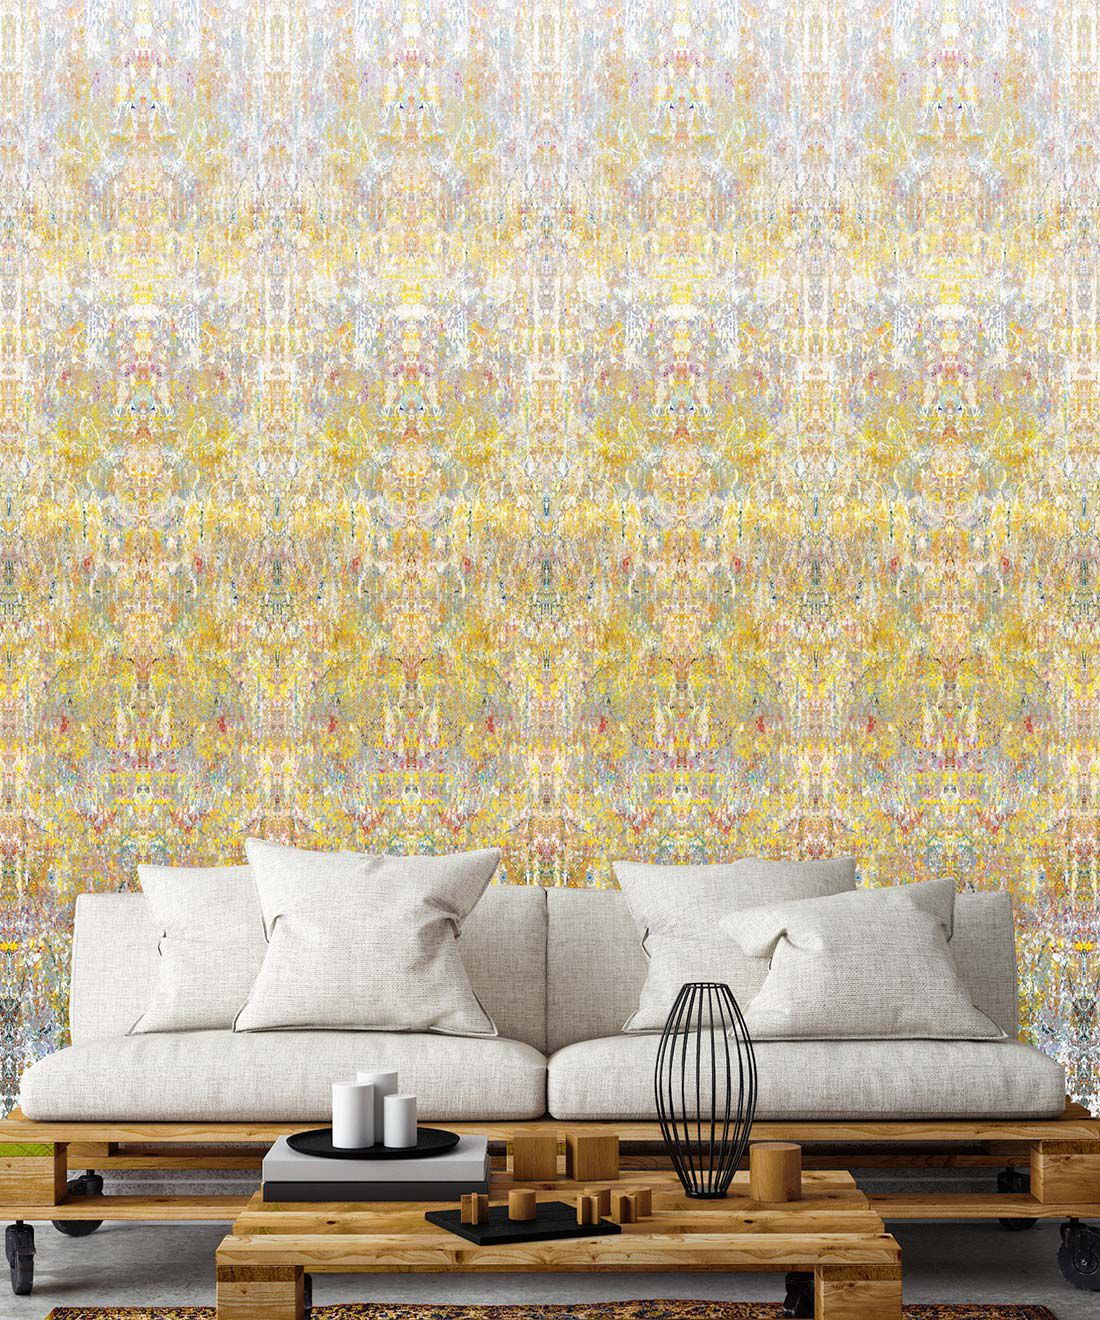 Ramose Wallpaper by Simcox • Color Light • Abstract Wallpaper • insitu